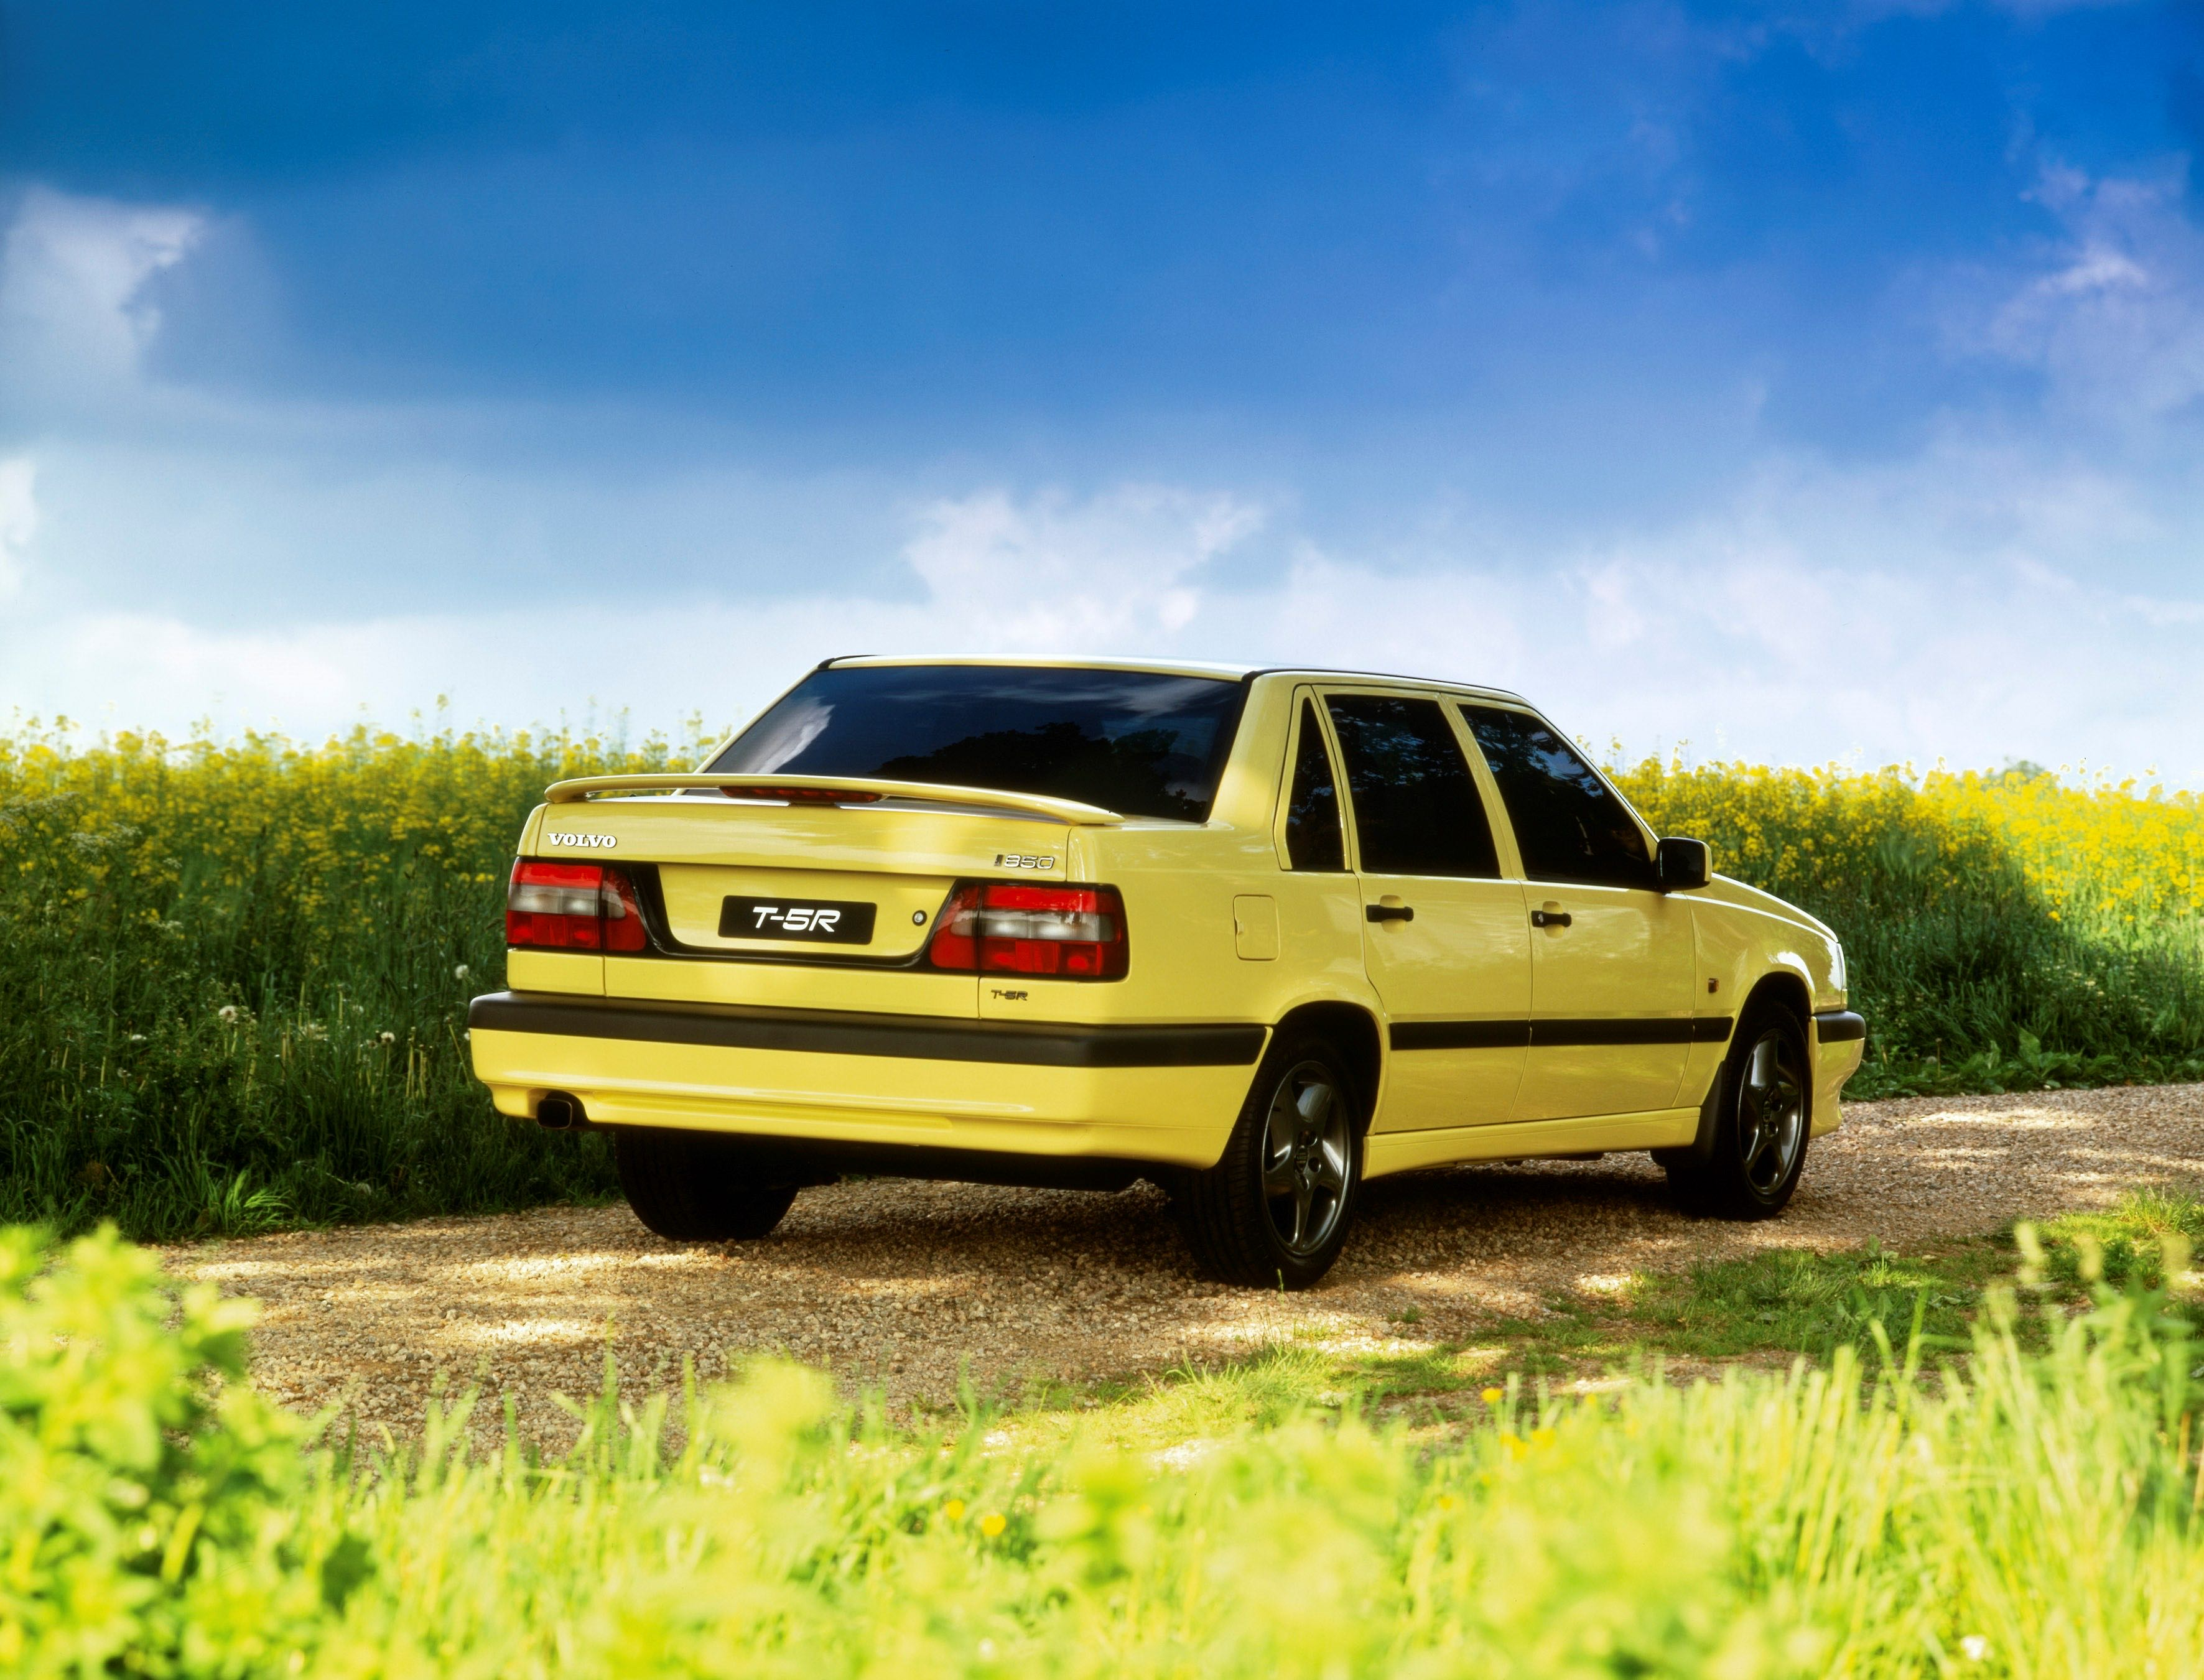 Volvo T 5r 850 -  850, 854, 1995, Exterior, Historical, Images, R, sedan, T-5R, Yellow, Yellow T-5R